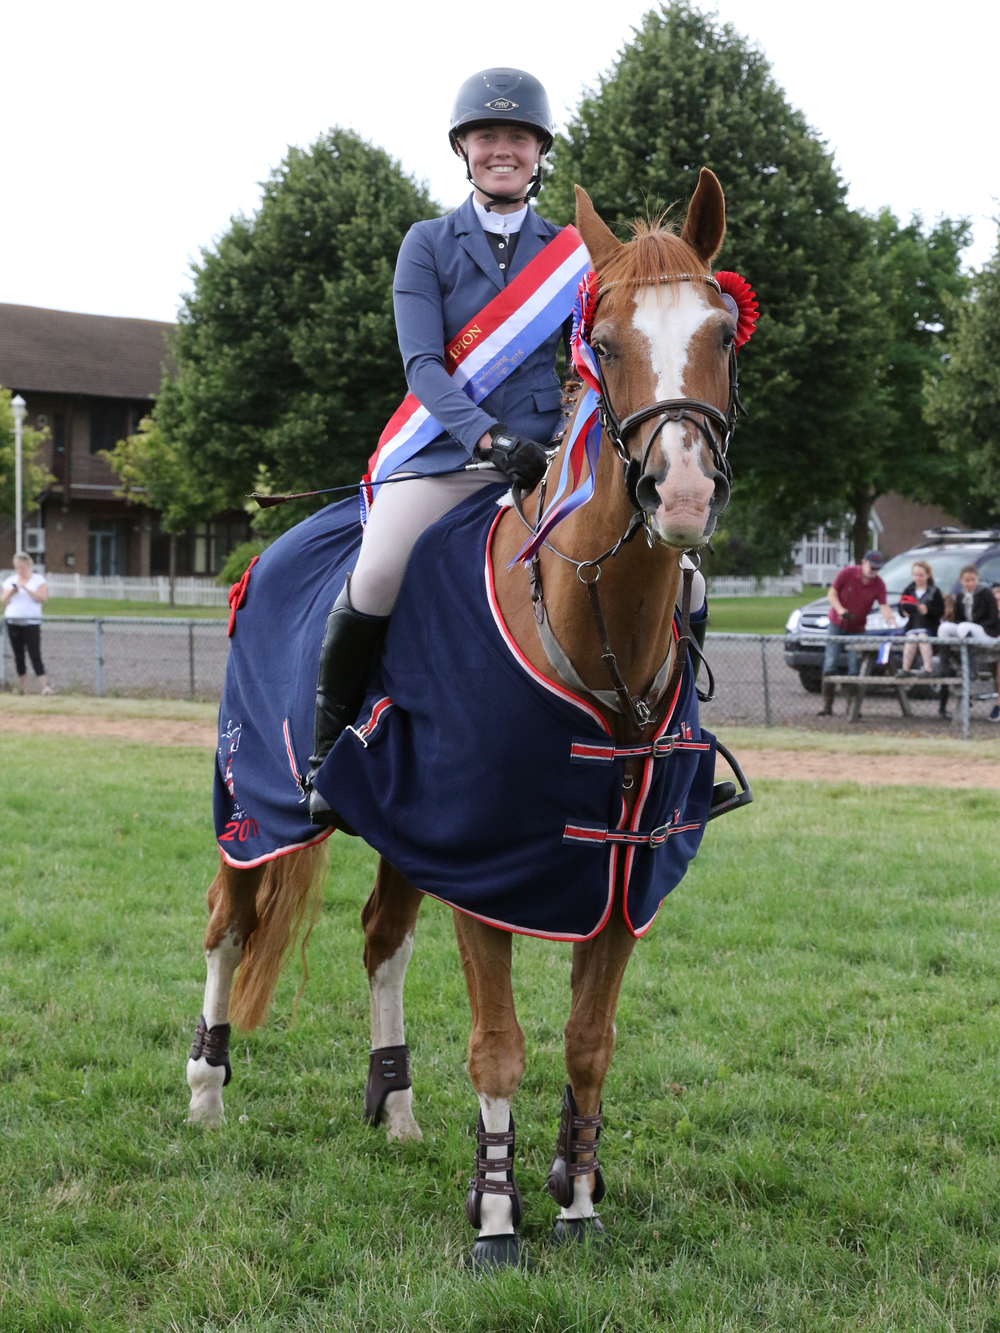 Individual winner of the 1.10 BS Just for Schools Championship Asha Smith riding Armani Pullman (Credit: 1st Class Images)